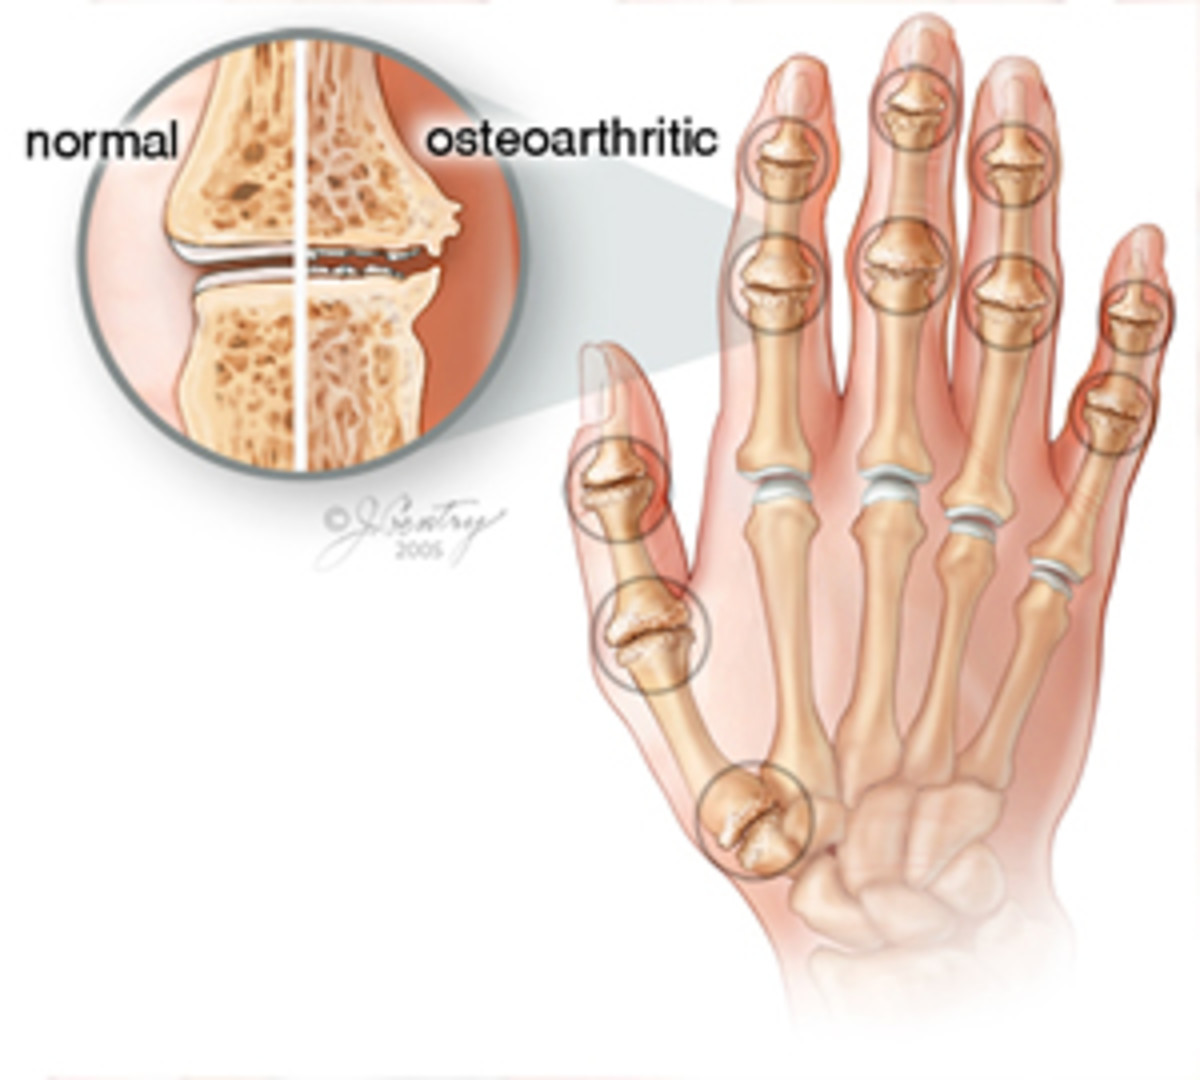 Osteoarthritis of the Hands